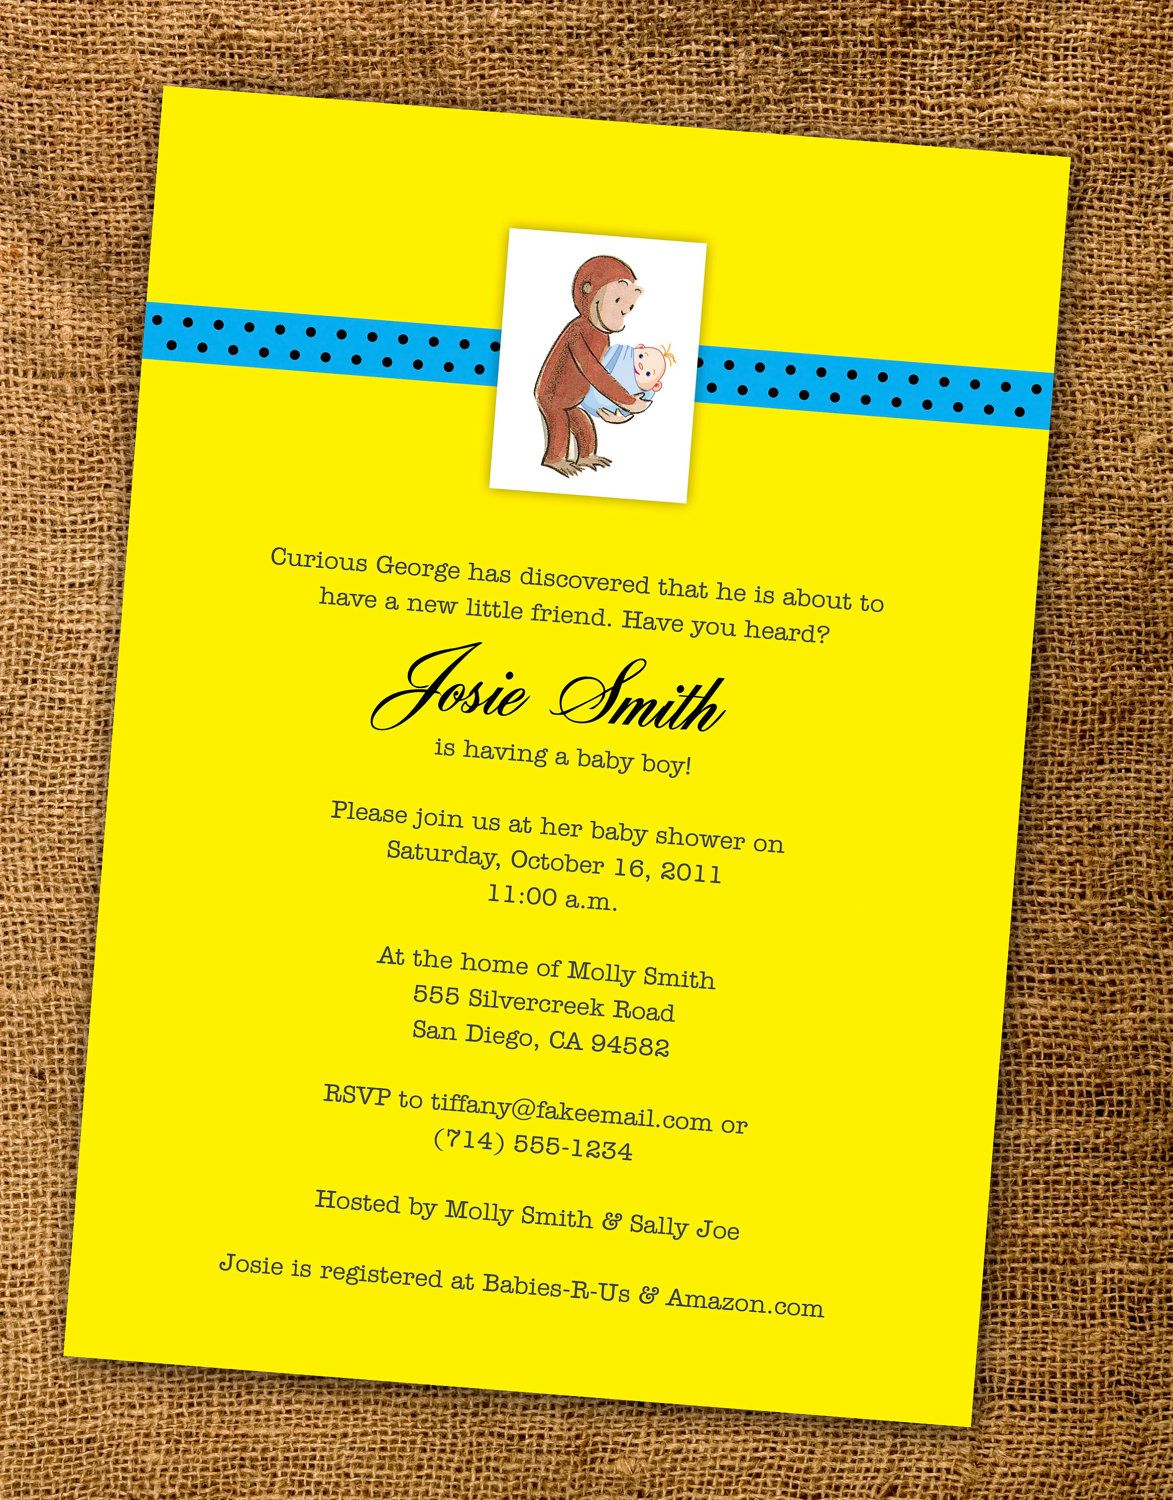 Piy print it yourself curious george baby showerparty piy print it yourself curious george baby showerparty invitation party circles and thank you cards 2000 via etsy pinterest curious george filmwisefo